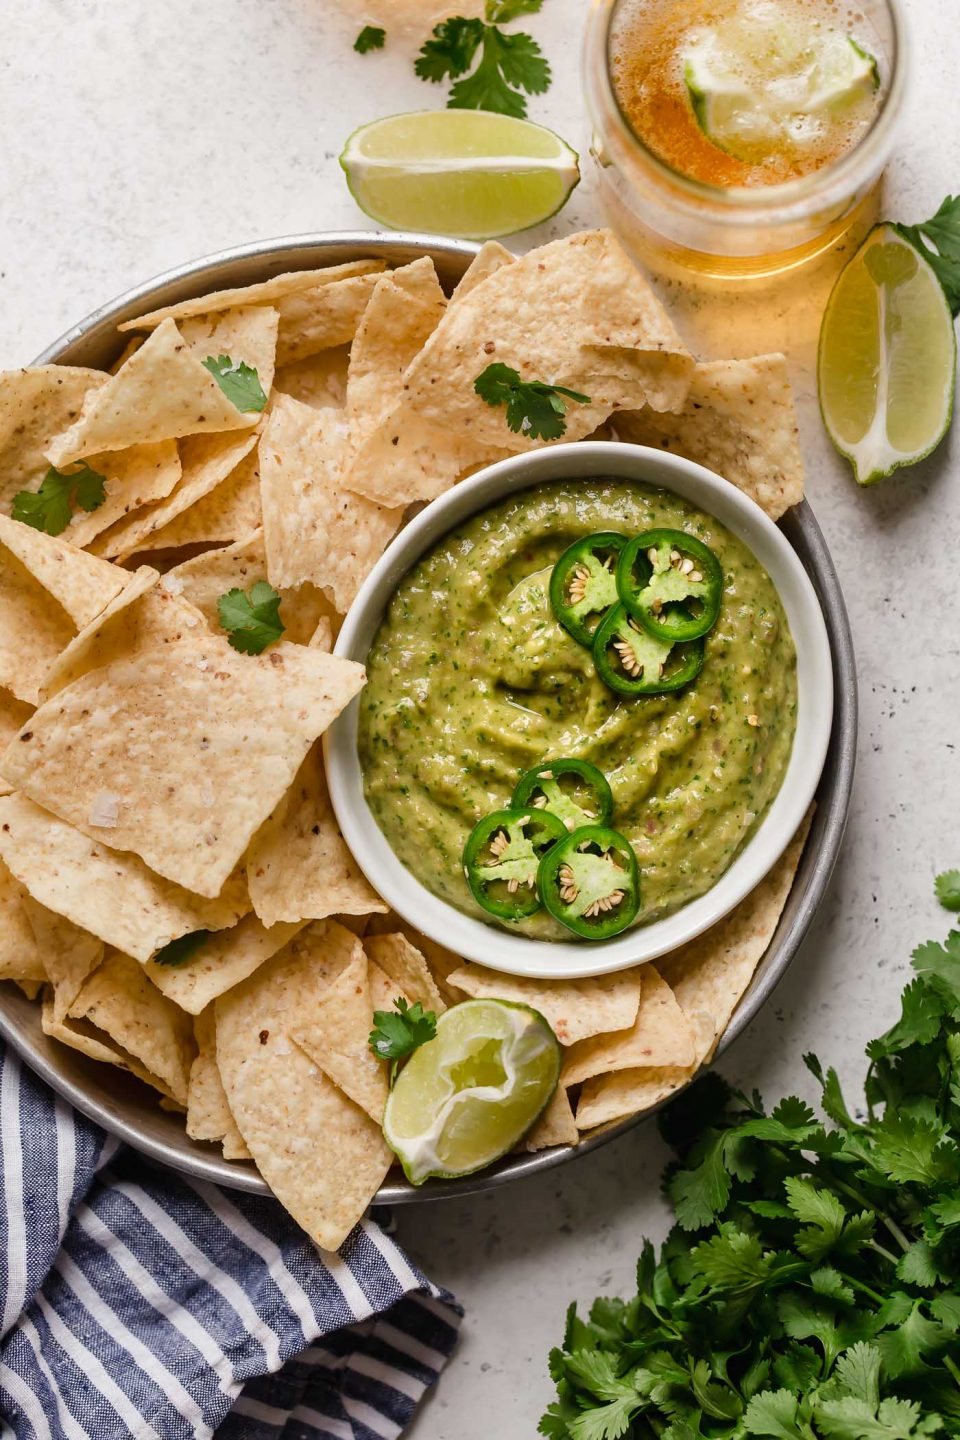 a classic salsa verde recipe with a twist, this creamy salsa verde is full of bright flavors (from tomatillos, peppers, cilantro, & lime juice), & gets tons of creaminess from avocado. this creamy salsa verde recipe is easy to make, & even easier to eat! say hello to your new favorite game day snack! #playswellwithbutter #salsaverde #easysalsaverderecipe #creamysalsaverde #tomatillosalsa #tomatillorecipes #tomatillosauce #easyveganrecipes #vegansnack #gamedaysnacks #gamedayappetizer #gamedayfood